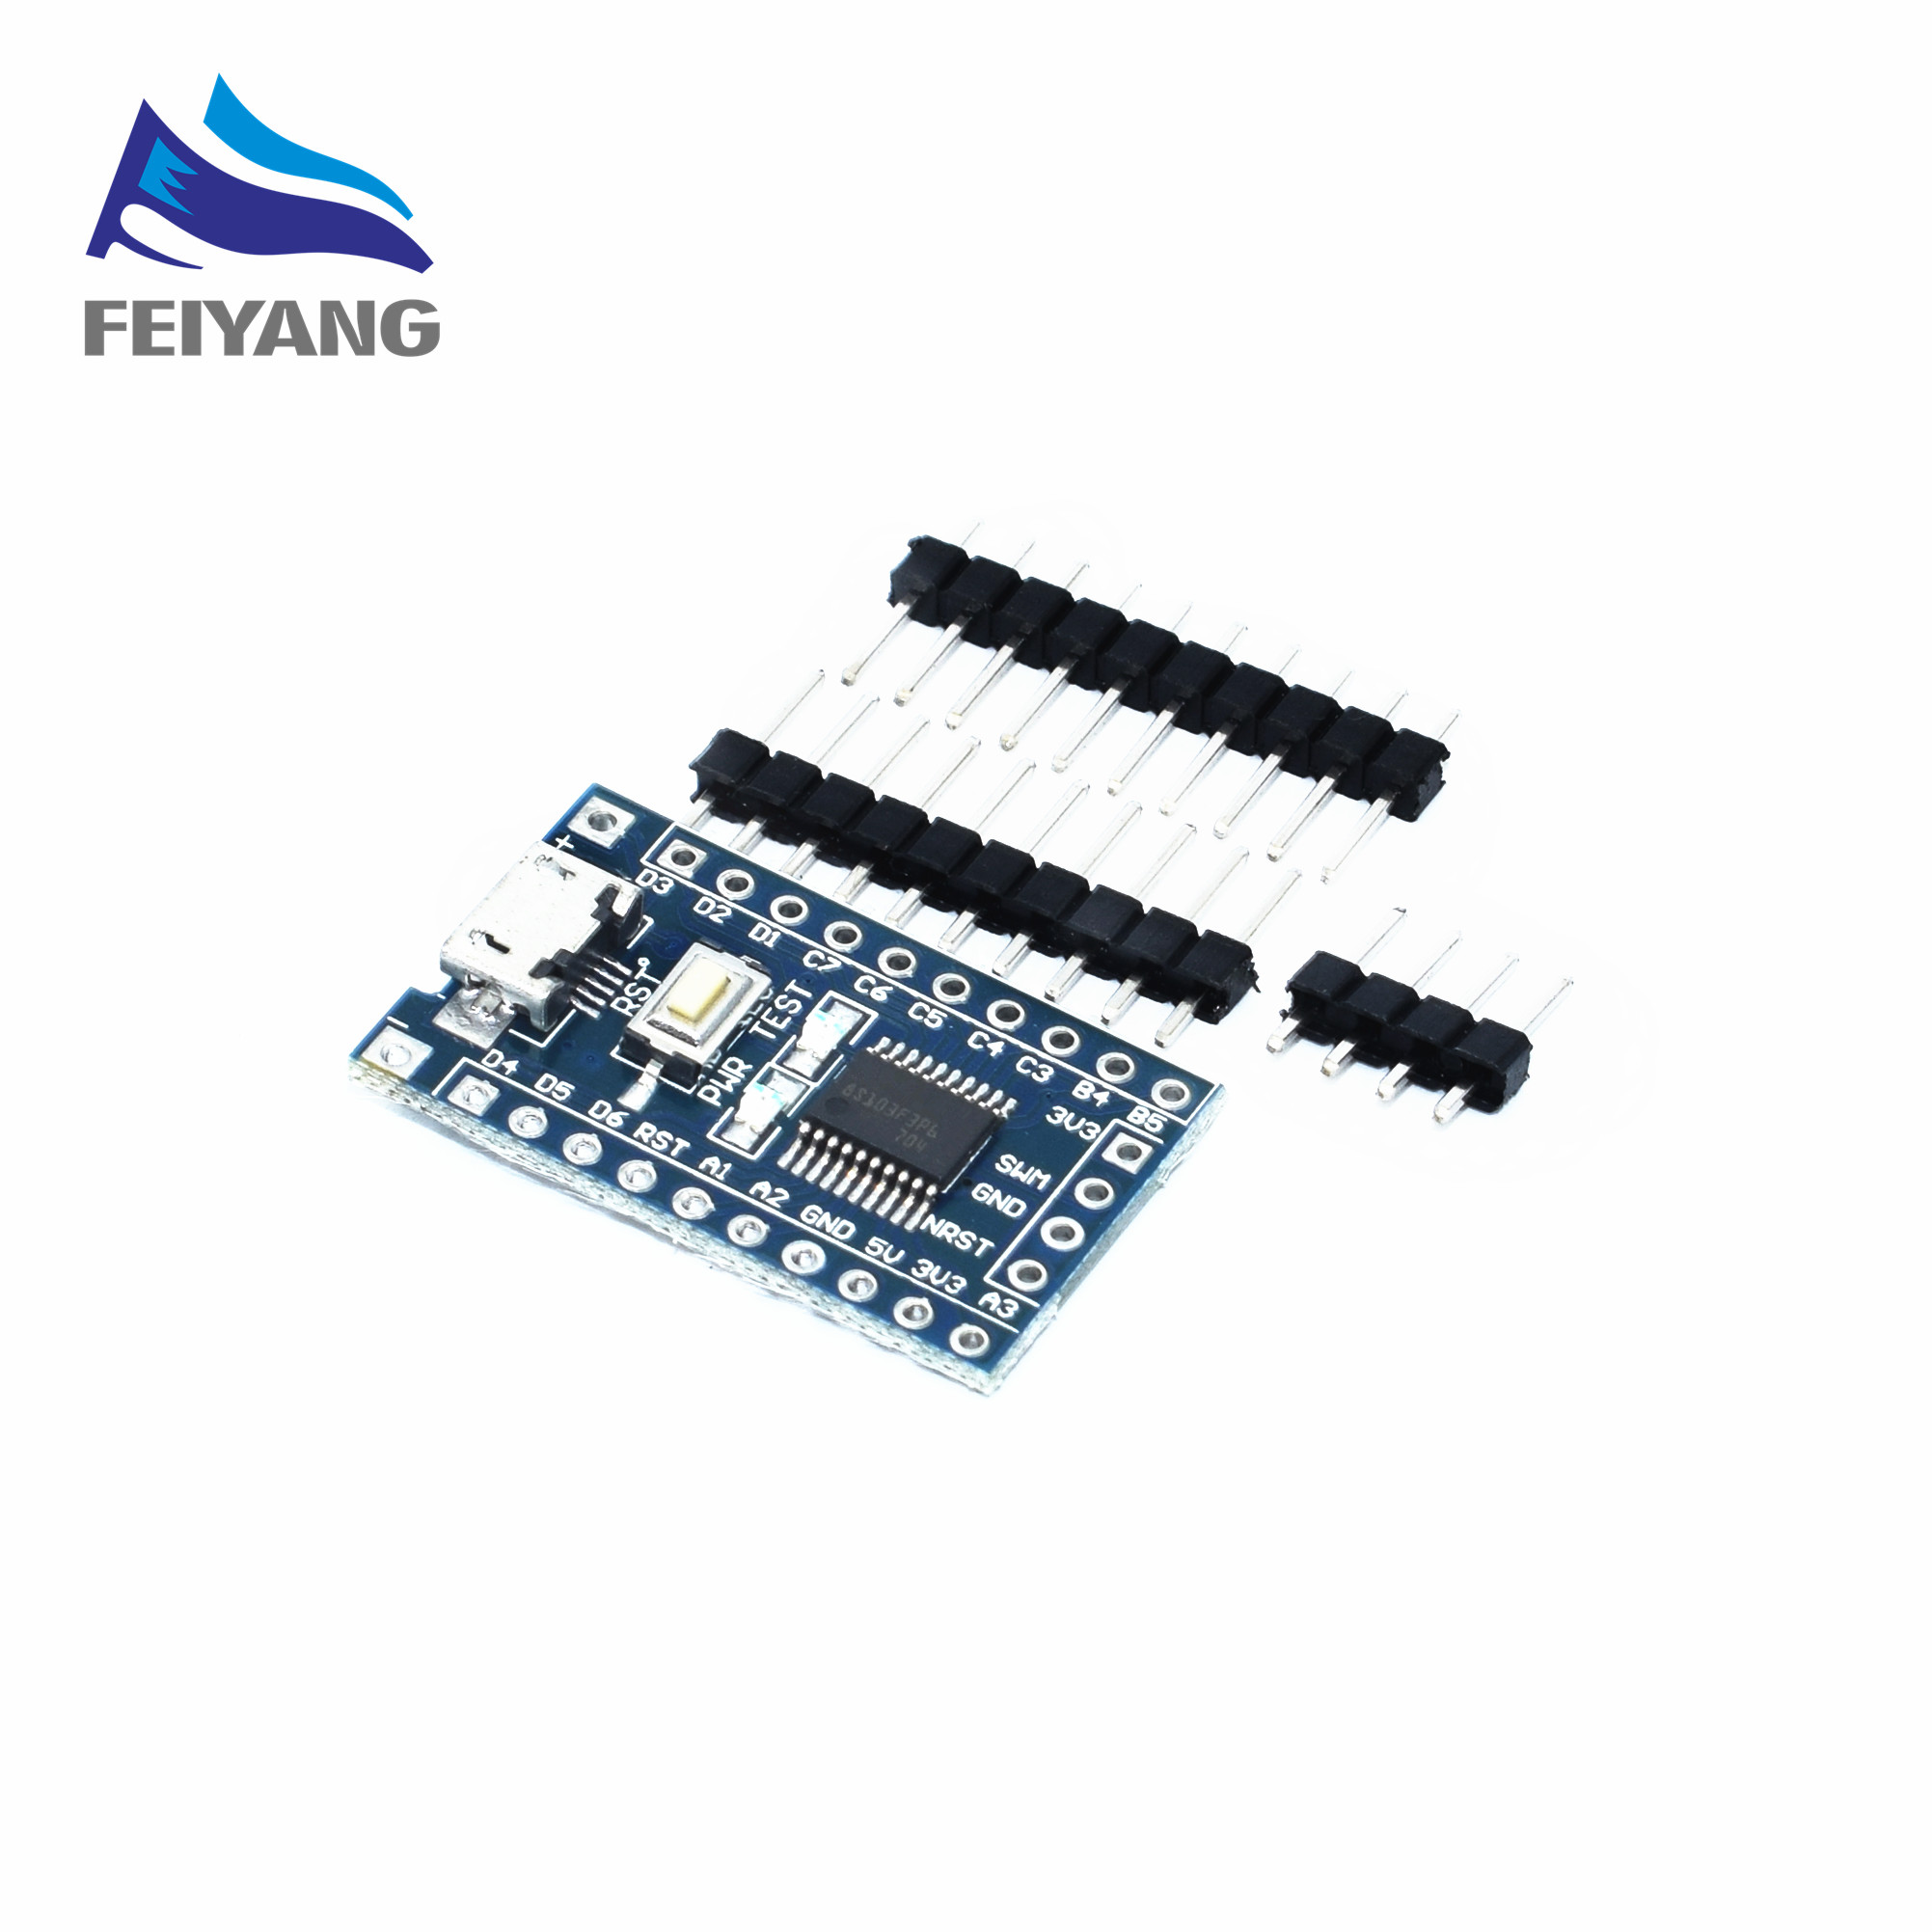 A35 10pcs SAMIORE ROBOT STM8S103F3P6 system board STM8S STM8 development board minimum core board 1